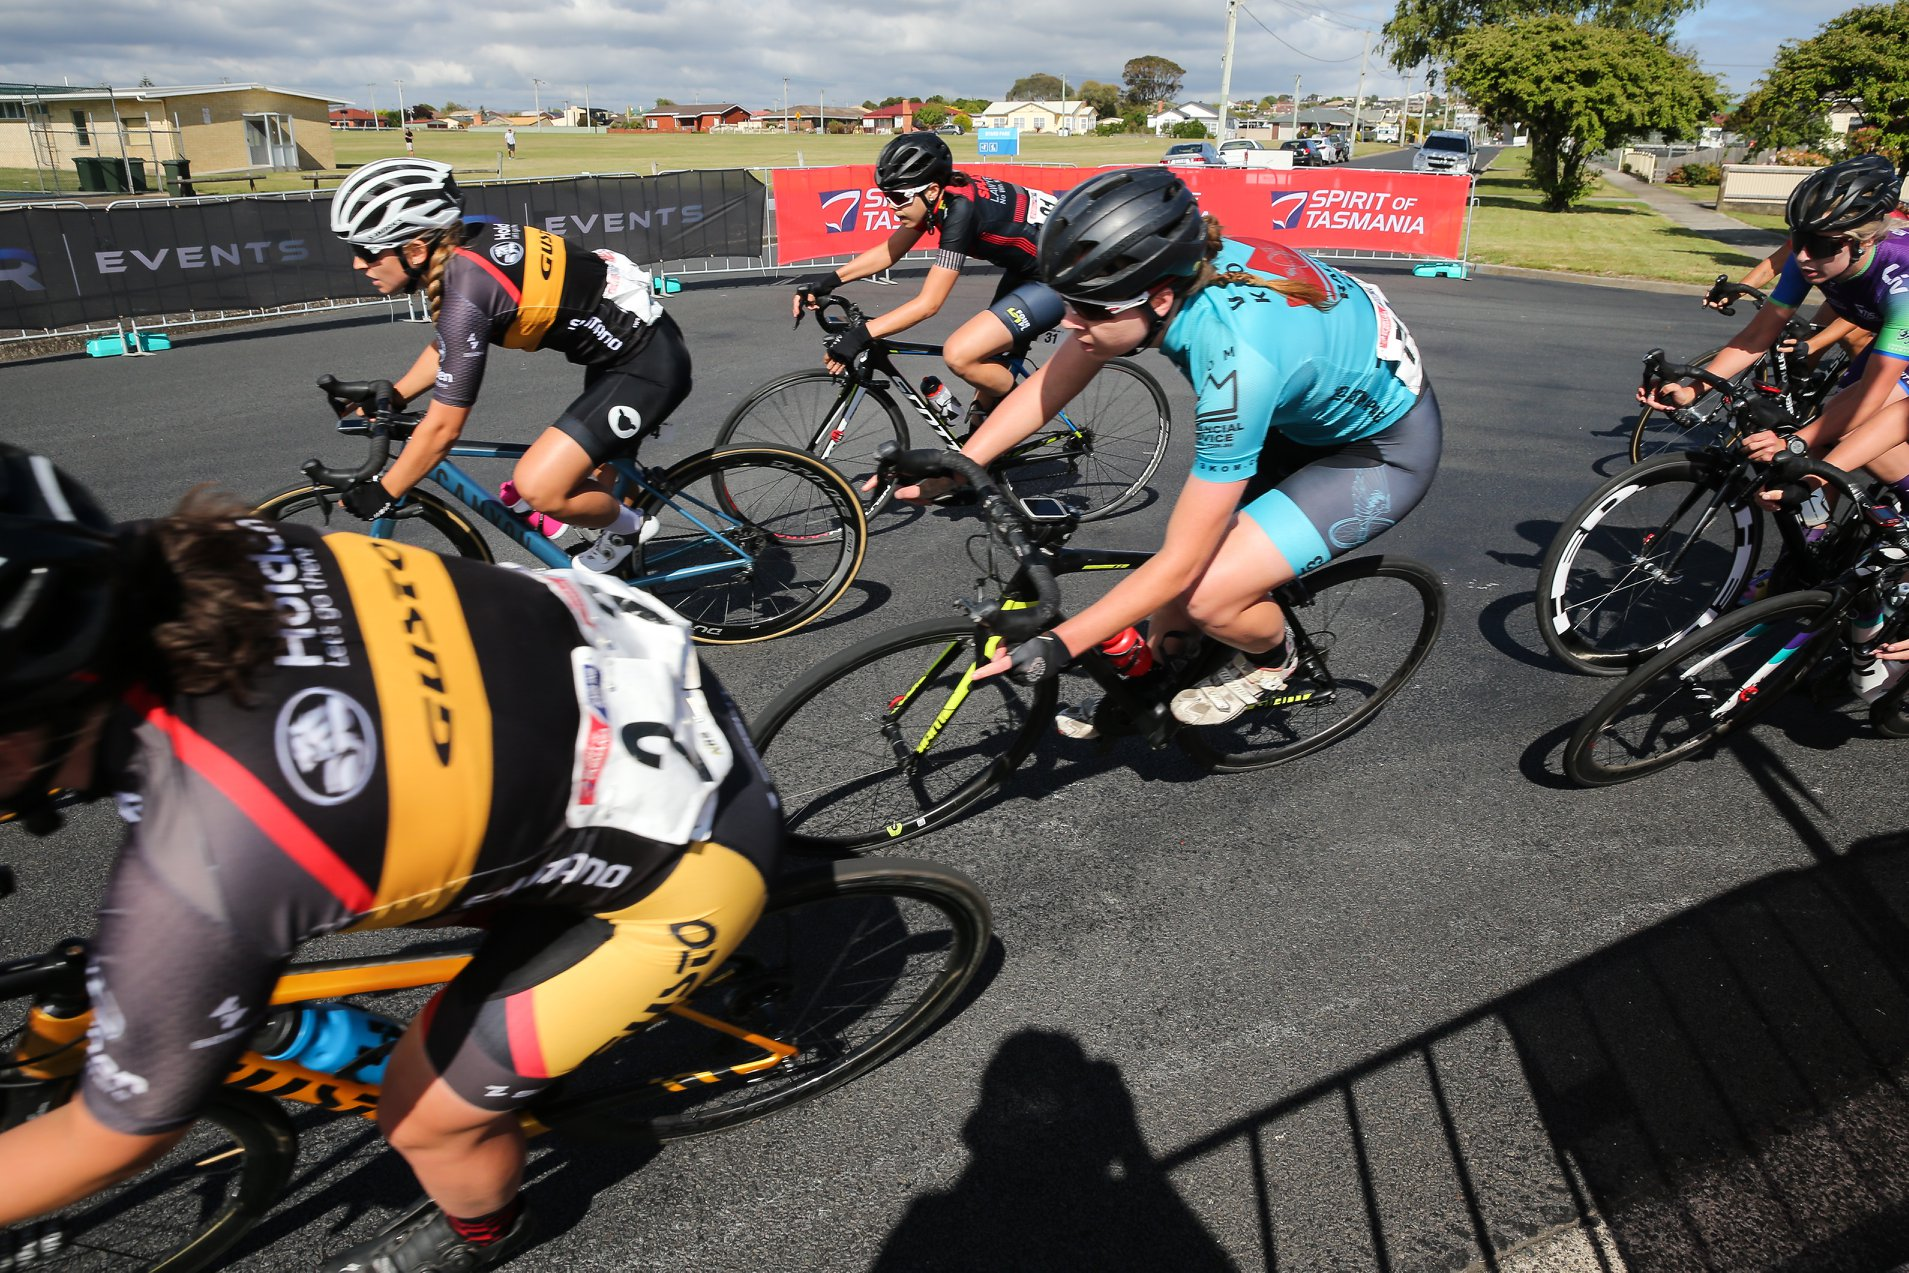 Kirsty Deacon takes the final corner of the crit on Stage 3. Photo Credit: Con Chronis Photography.